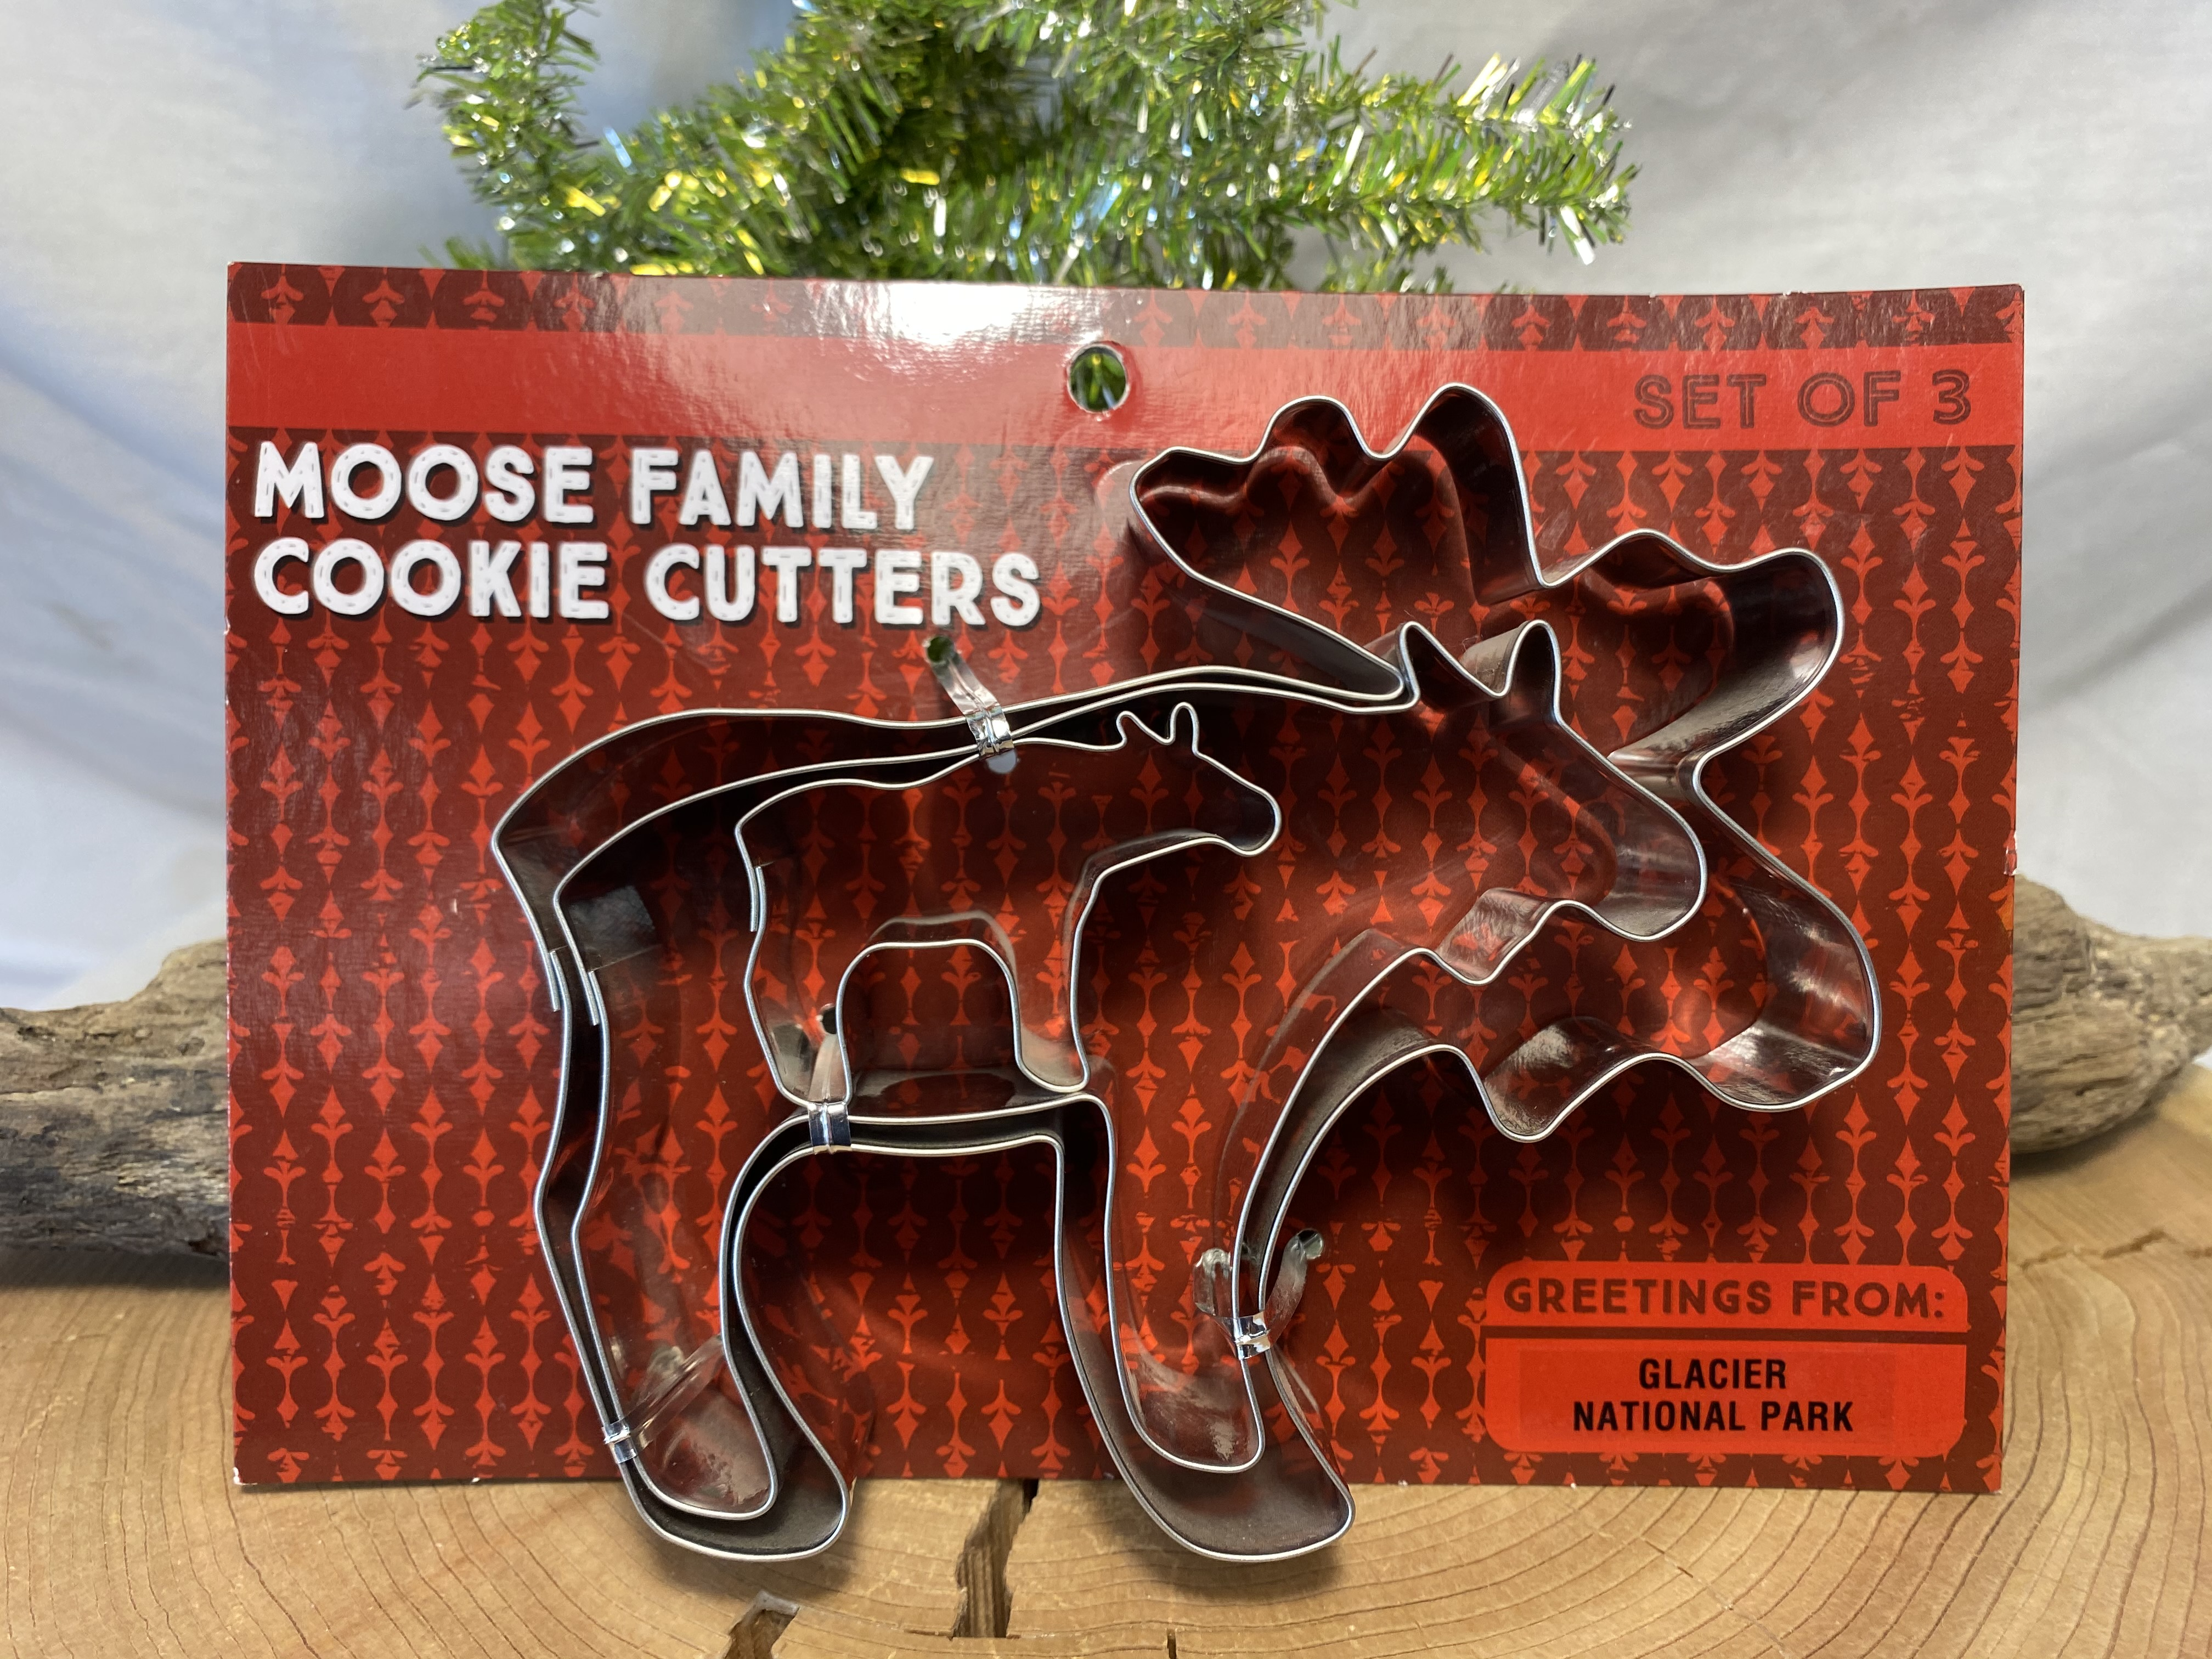 Moose Family Cookie Cutter Set